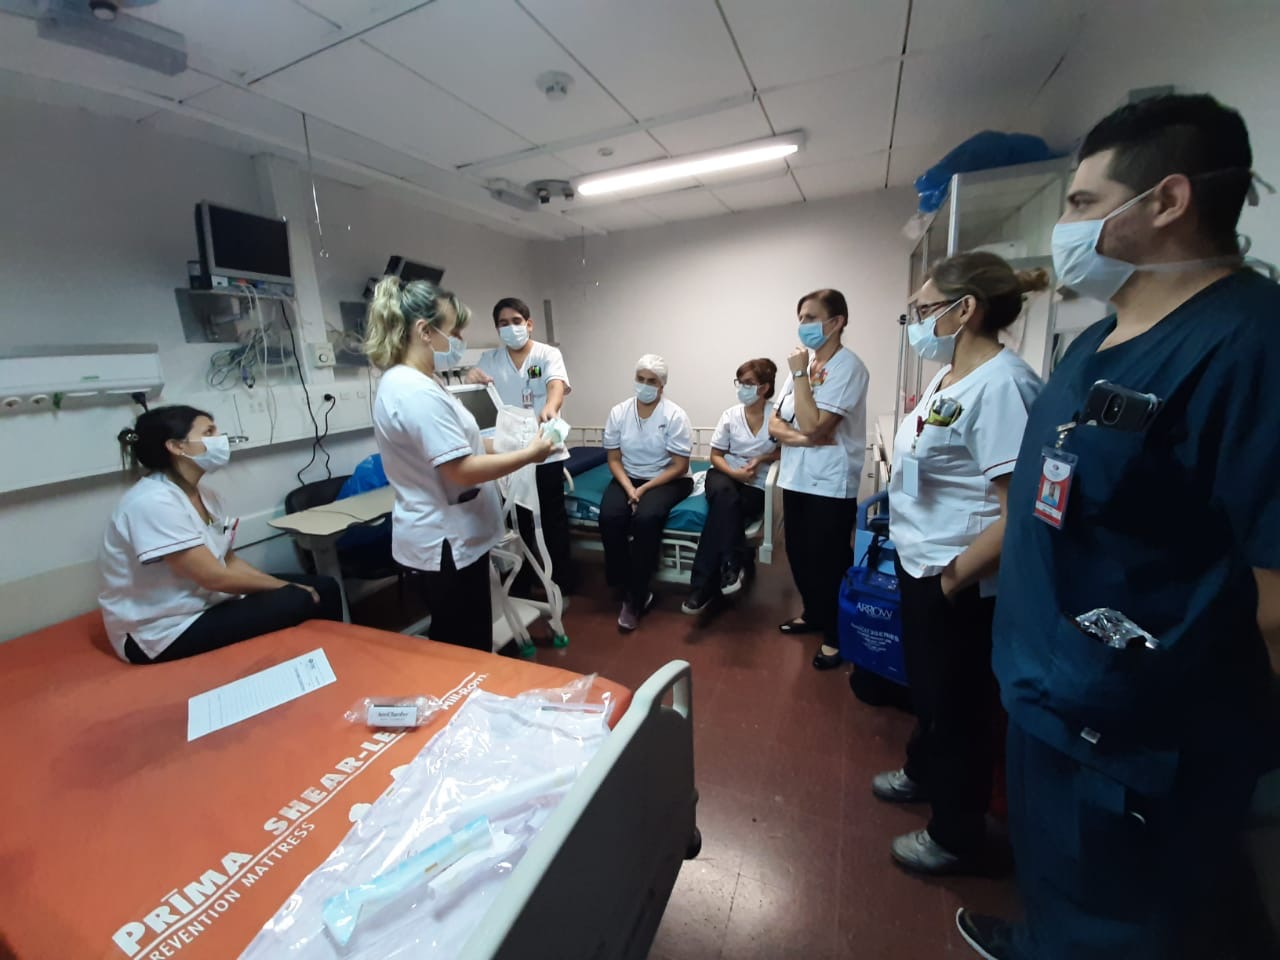 A team meeting in a lean hospital in Argentina